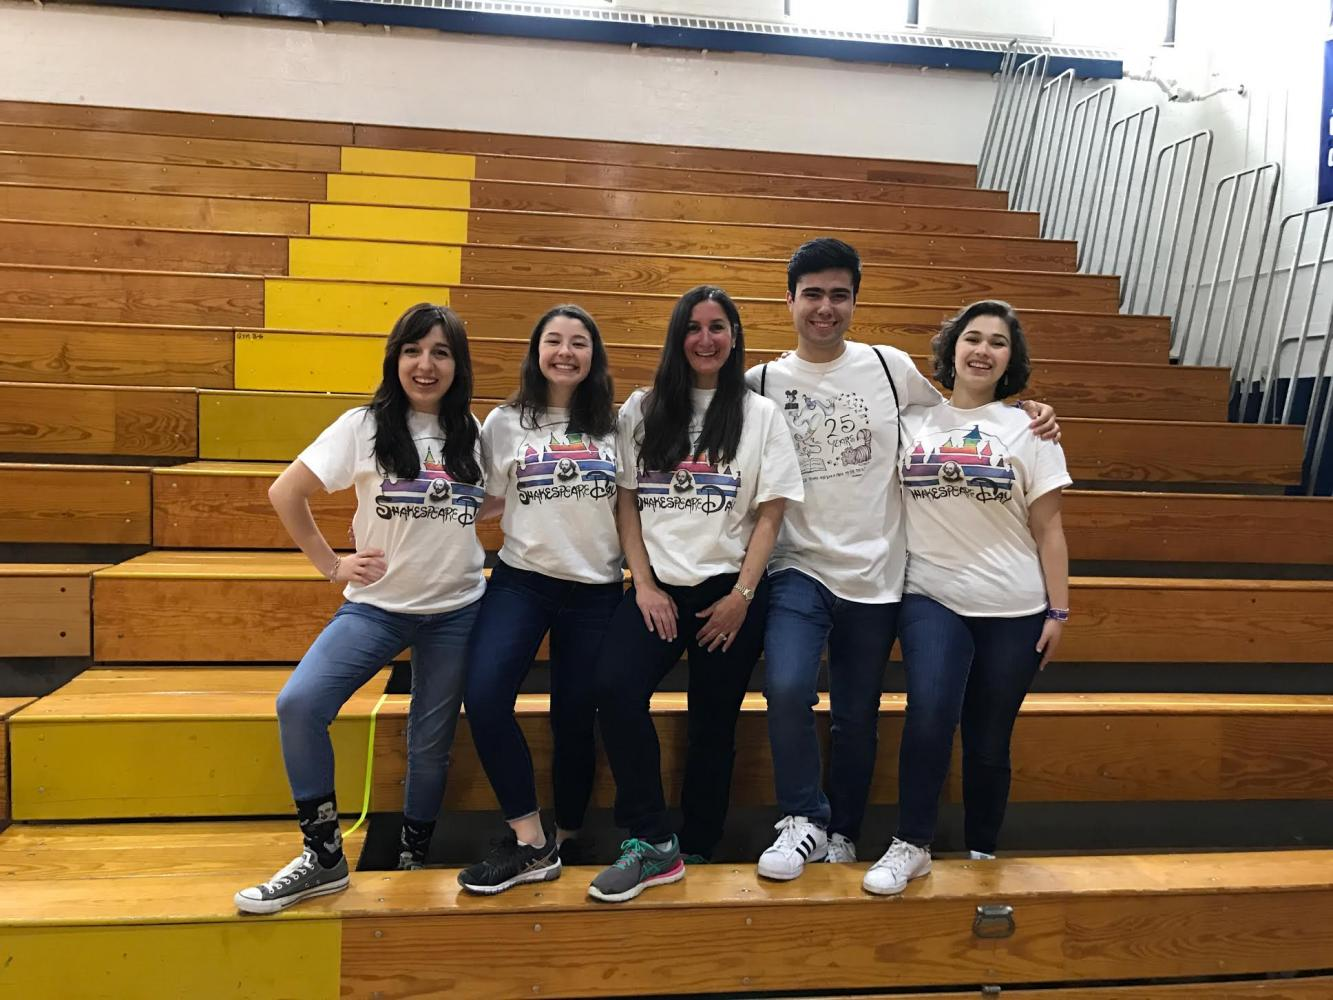 Senior coordinators Sarah DeMarino, Emilia Charno, Christian Hill, and Anna Cohen have helped to coordinate the past two Shakespeare Days with Ms. Valenti.